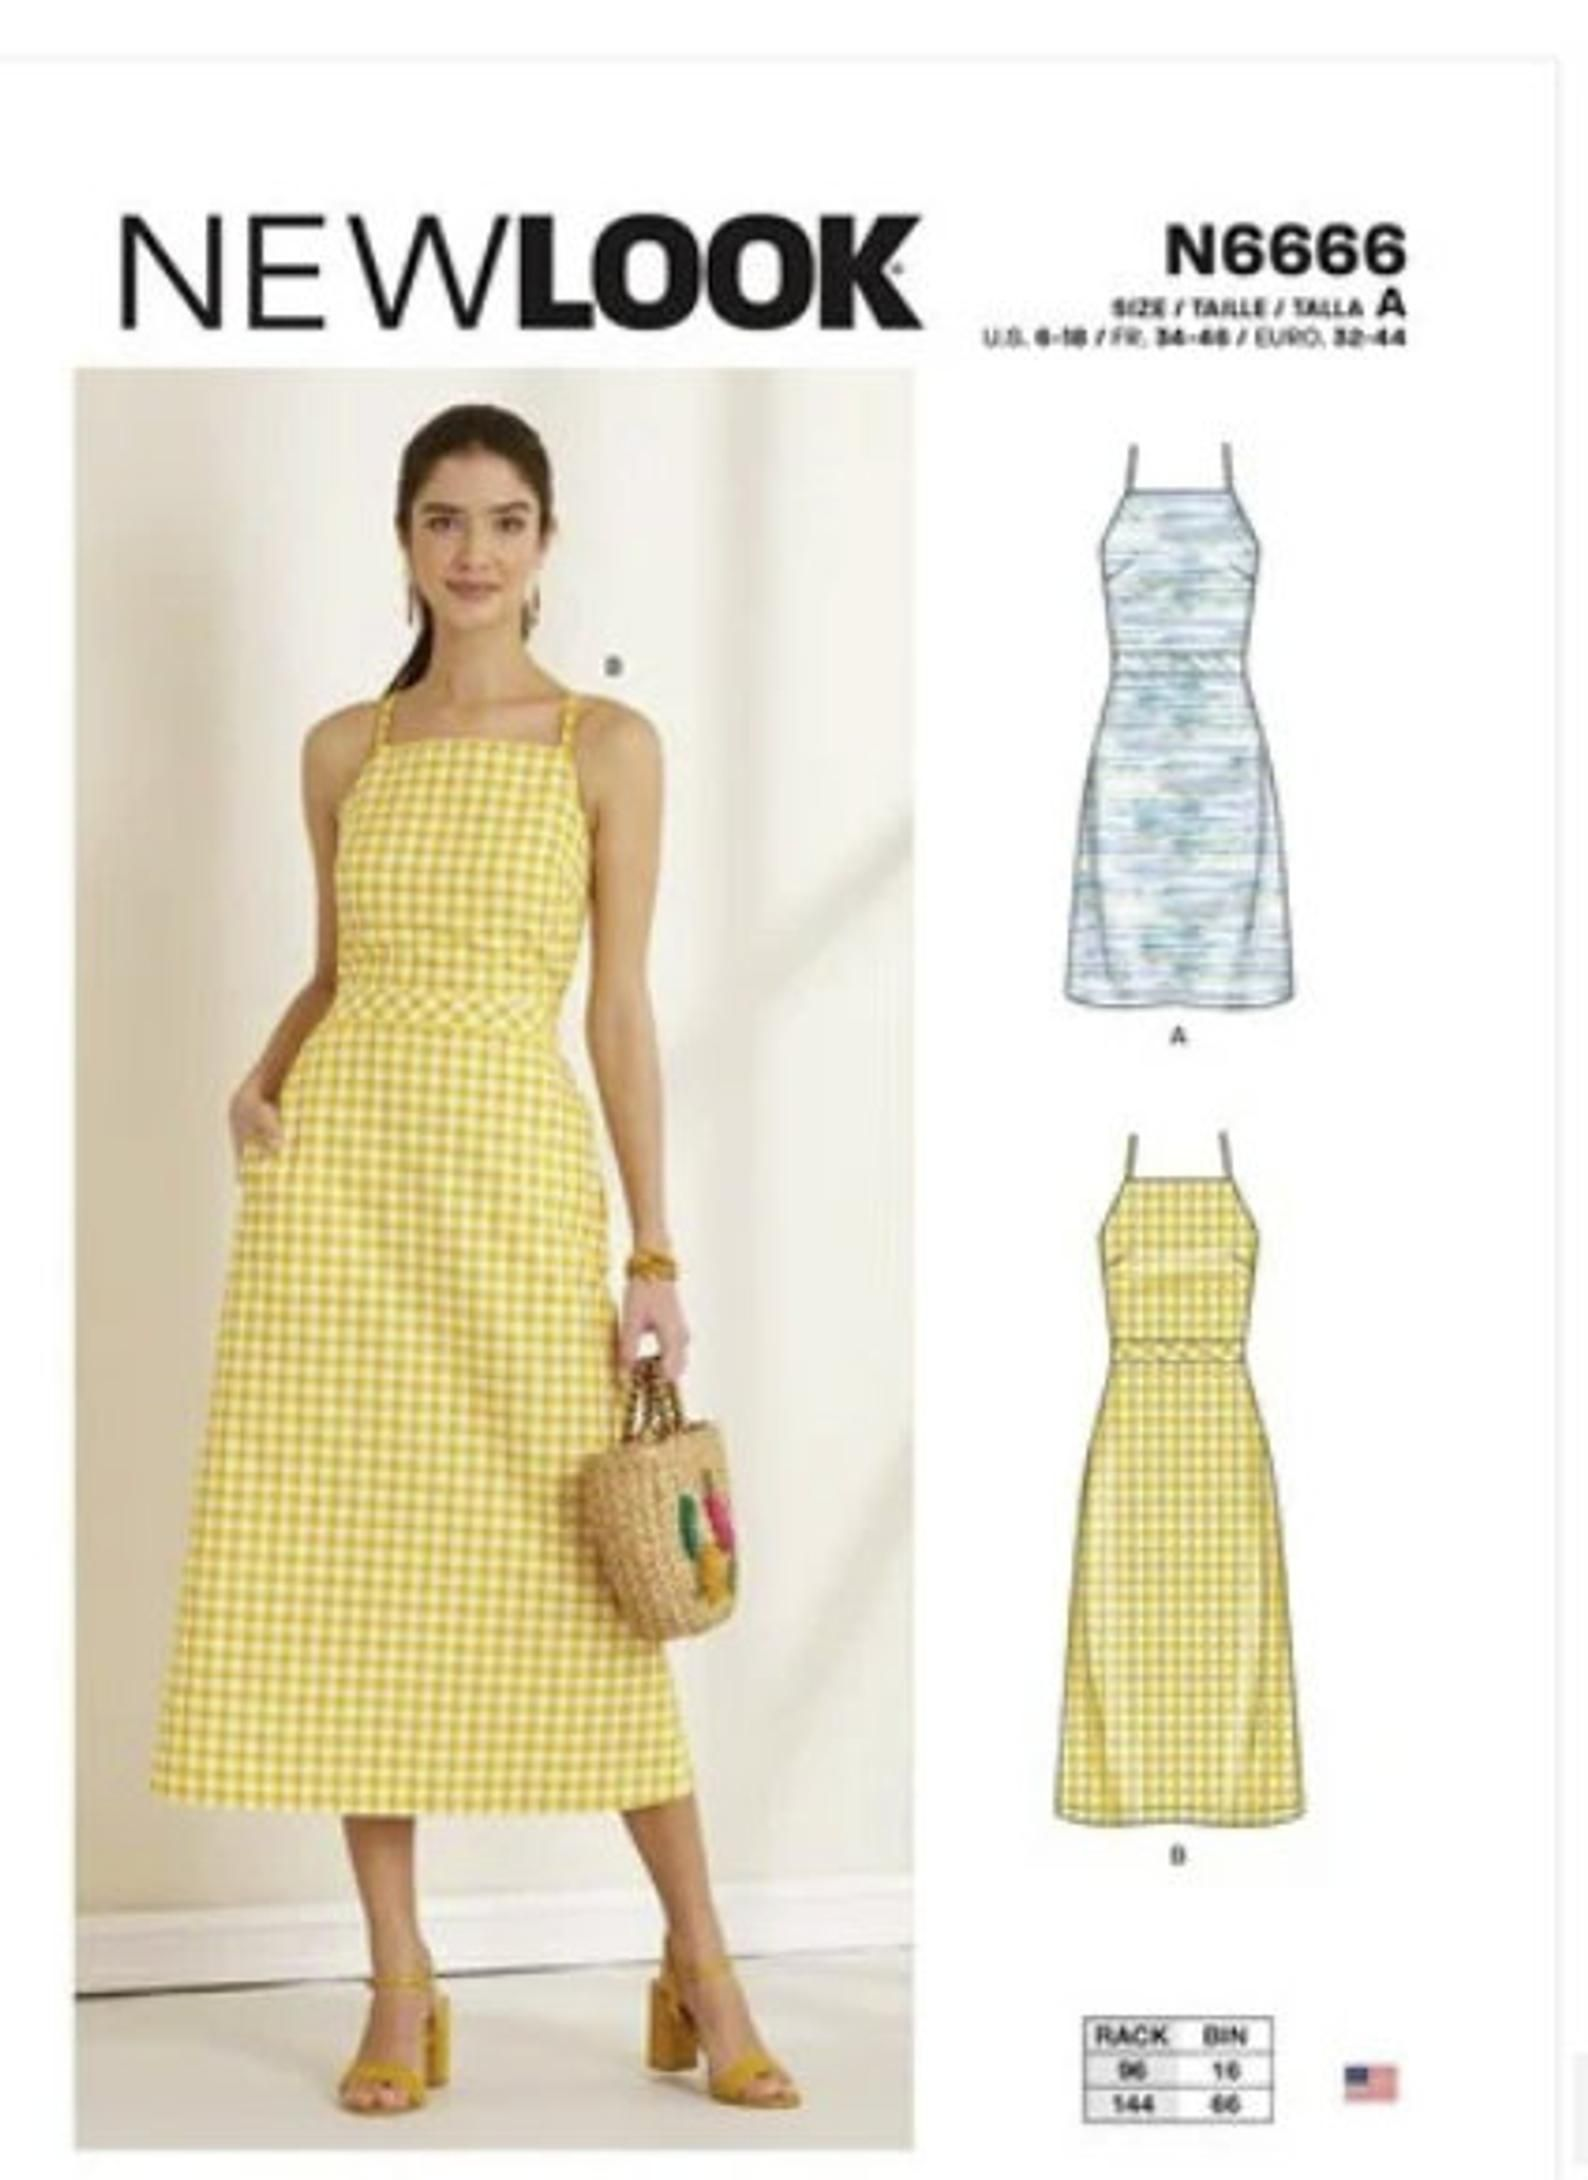 Sewing Pattern For Womens Dresses New Look Pattern N6666 Misses Halter Dresses With Back Tie New Pattern Womens Summer Dress Sewing Patterns Free Women Dress Sewing Patterns Free Summer Dress Sewing [ 2180 x 1588 Pixel ]